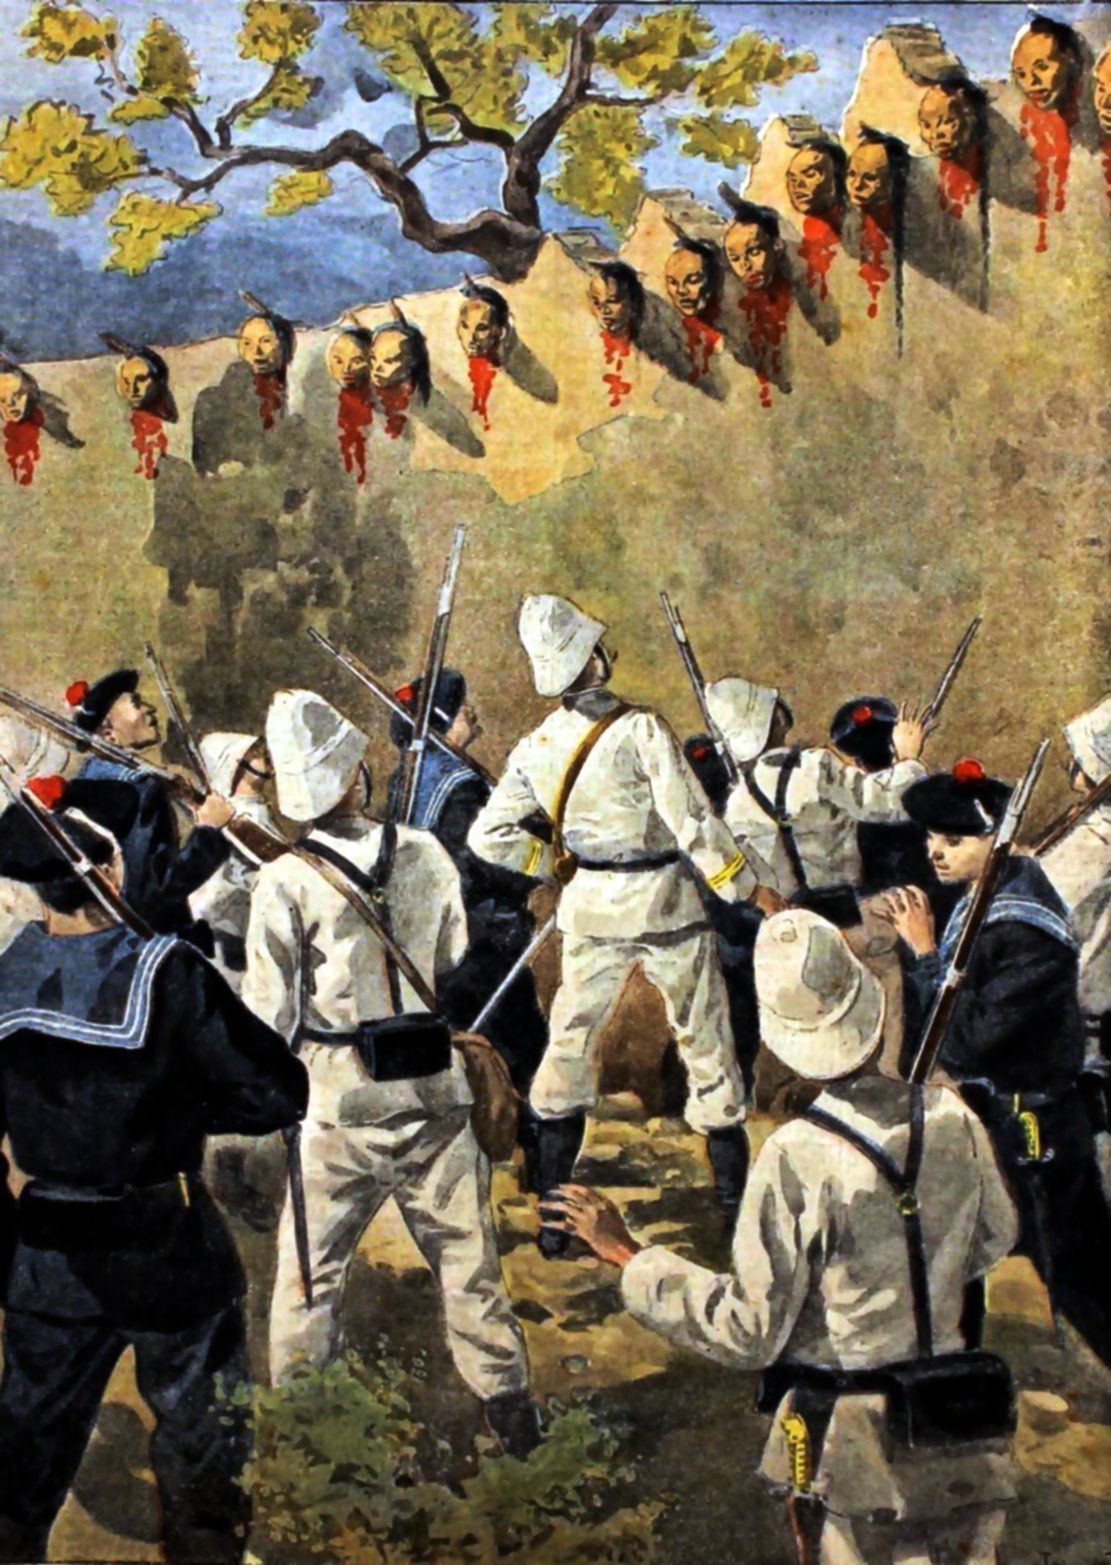 The Chinese Boxer Rebellion of 1900